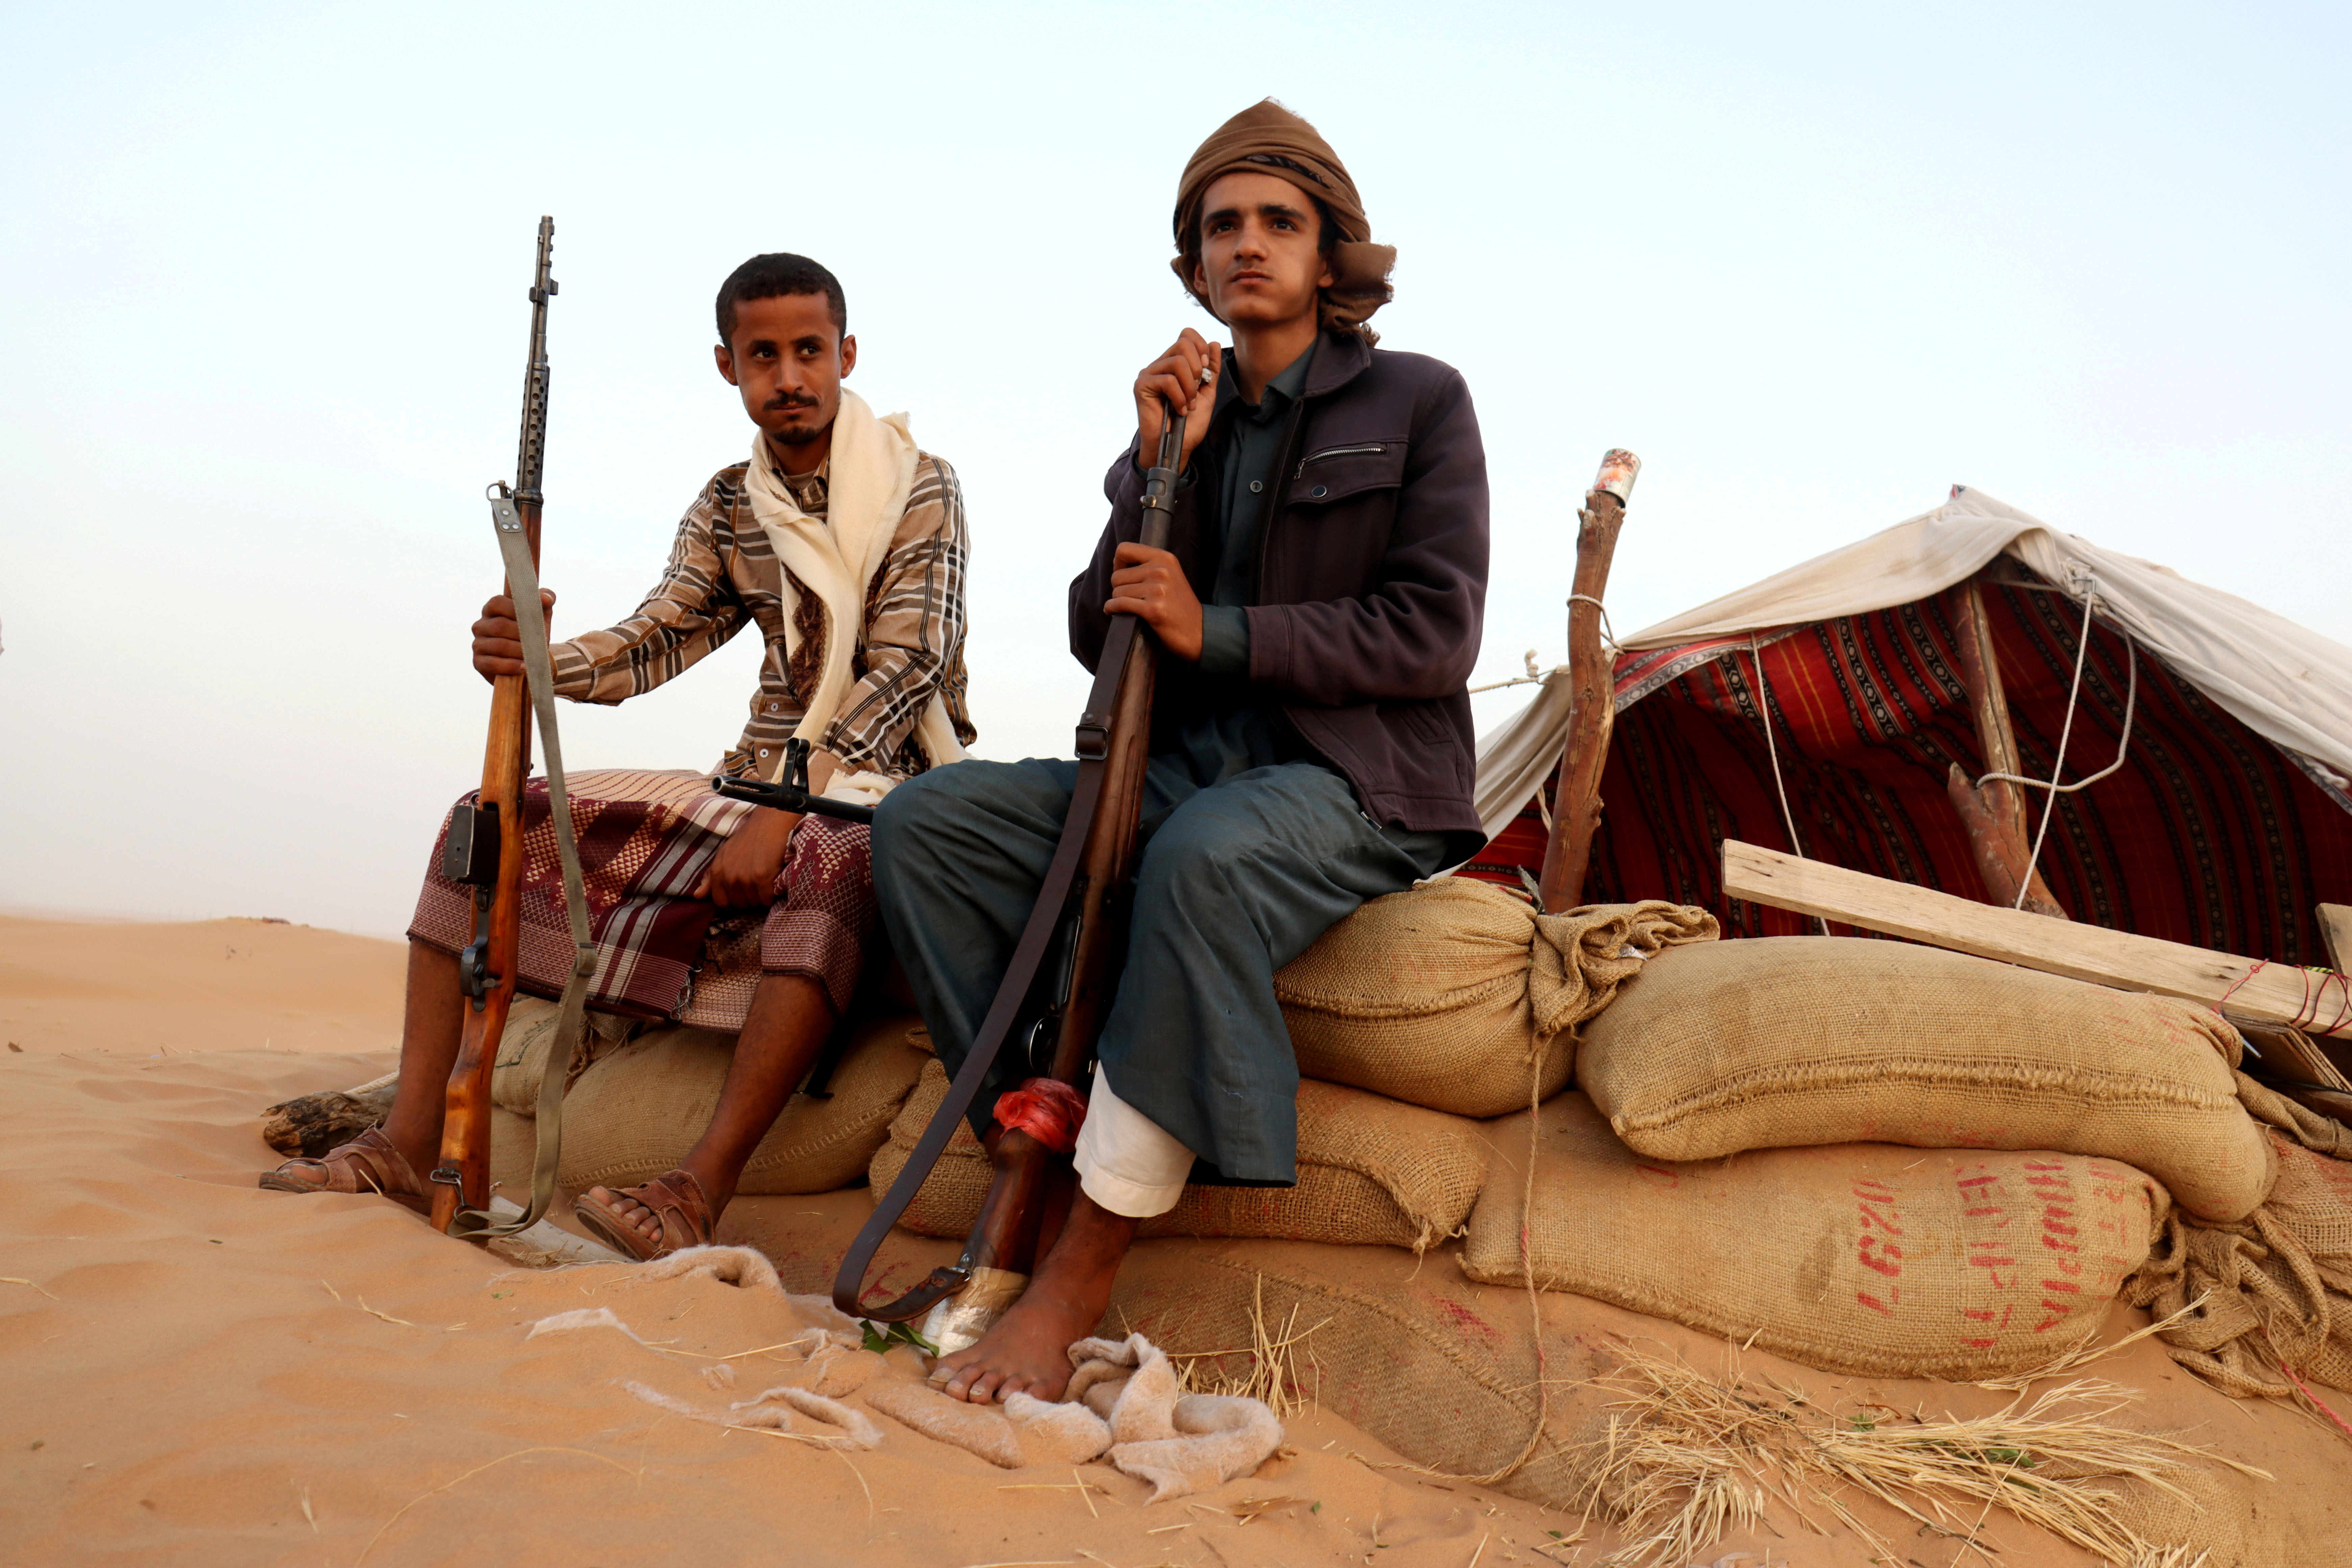 Armed men loyal to the government forces guard a site near the Safer oil fields in Marib, Yemen September 12, 2021. Picture taken September 12, 2021. REUTERS/Ali Owidha/File Photo